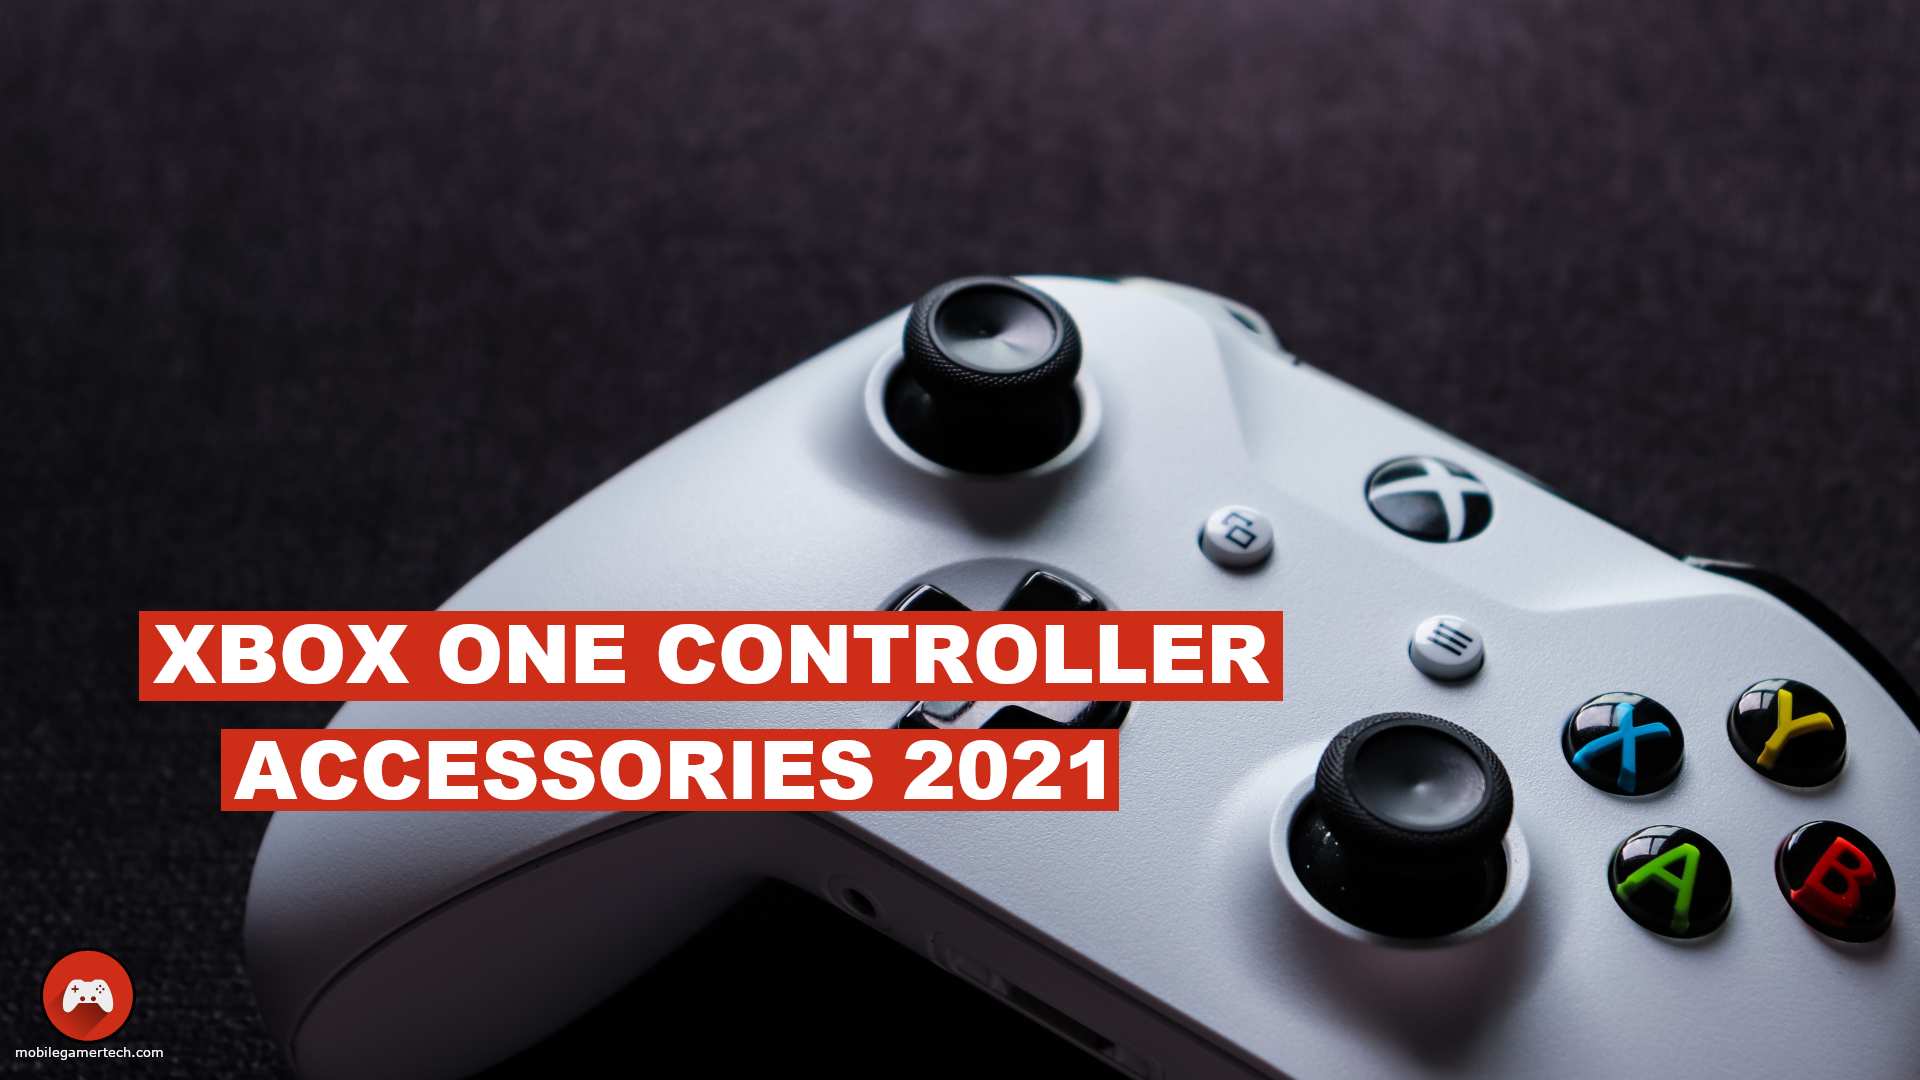 Xbox One Controller Accessories